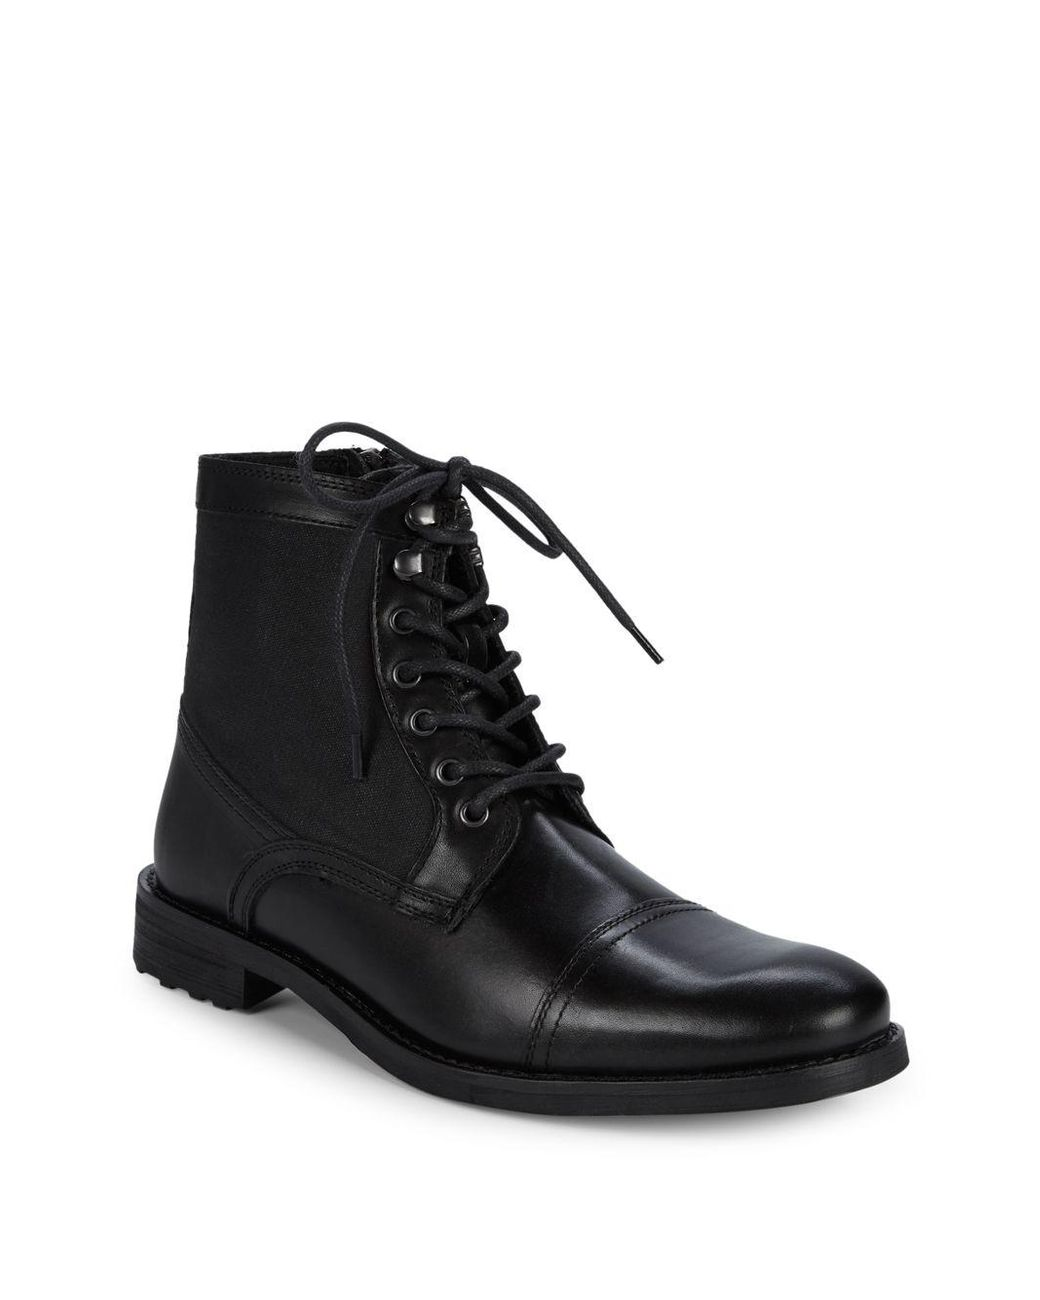 Kenneth Cole REACTION Men/'s Zenith Fashion Boot